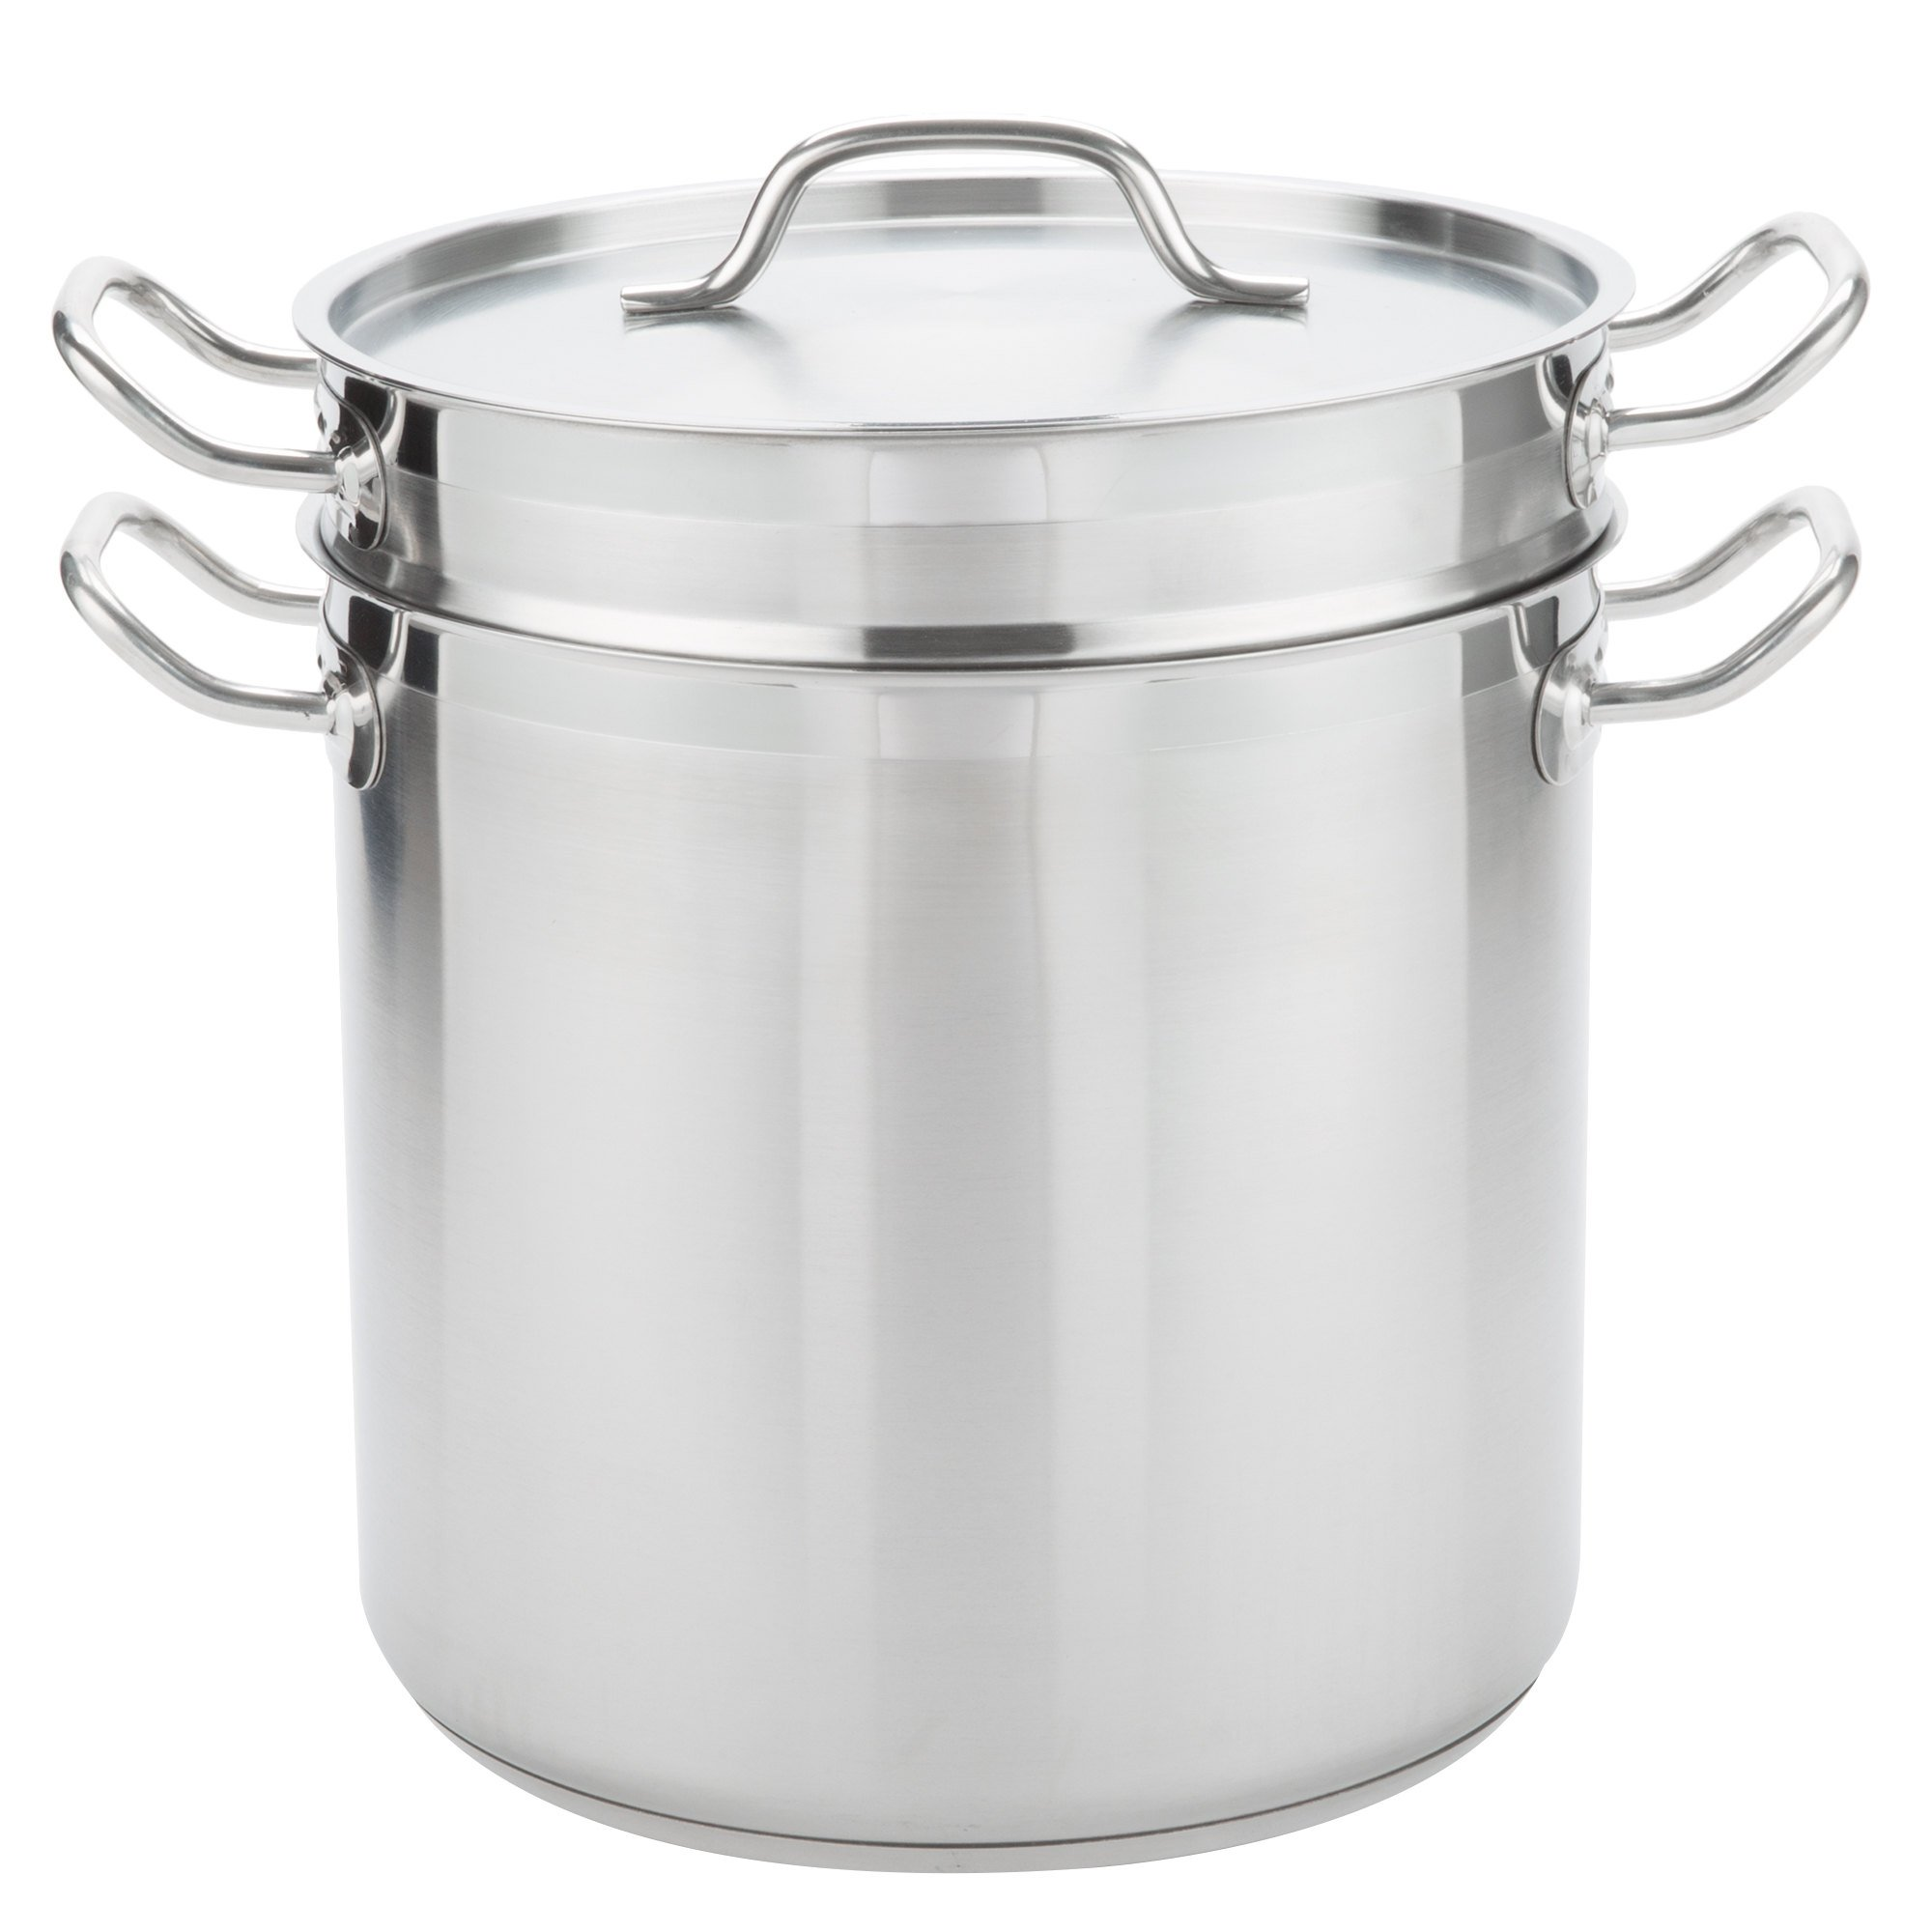 TableTop King 16 Qt Stainless Steel Aluminum-Clad Double Boiler